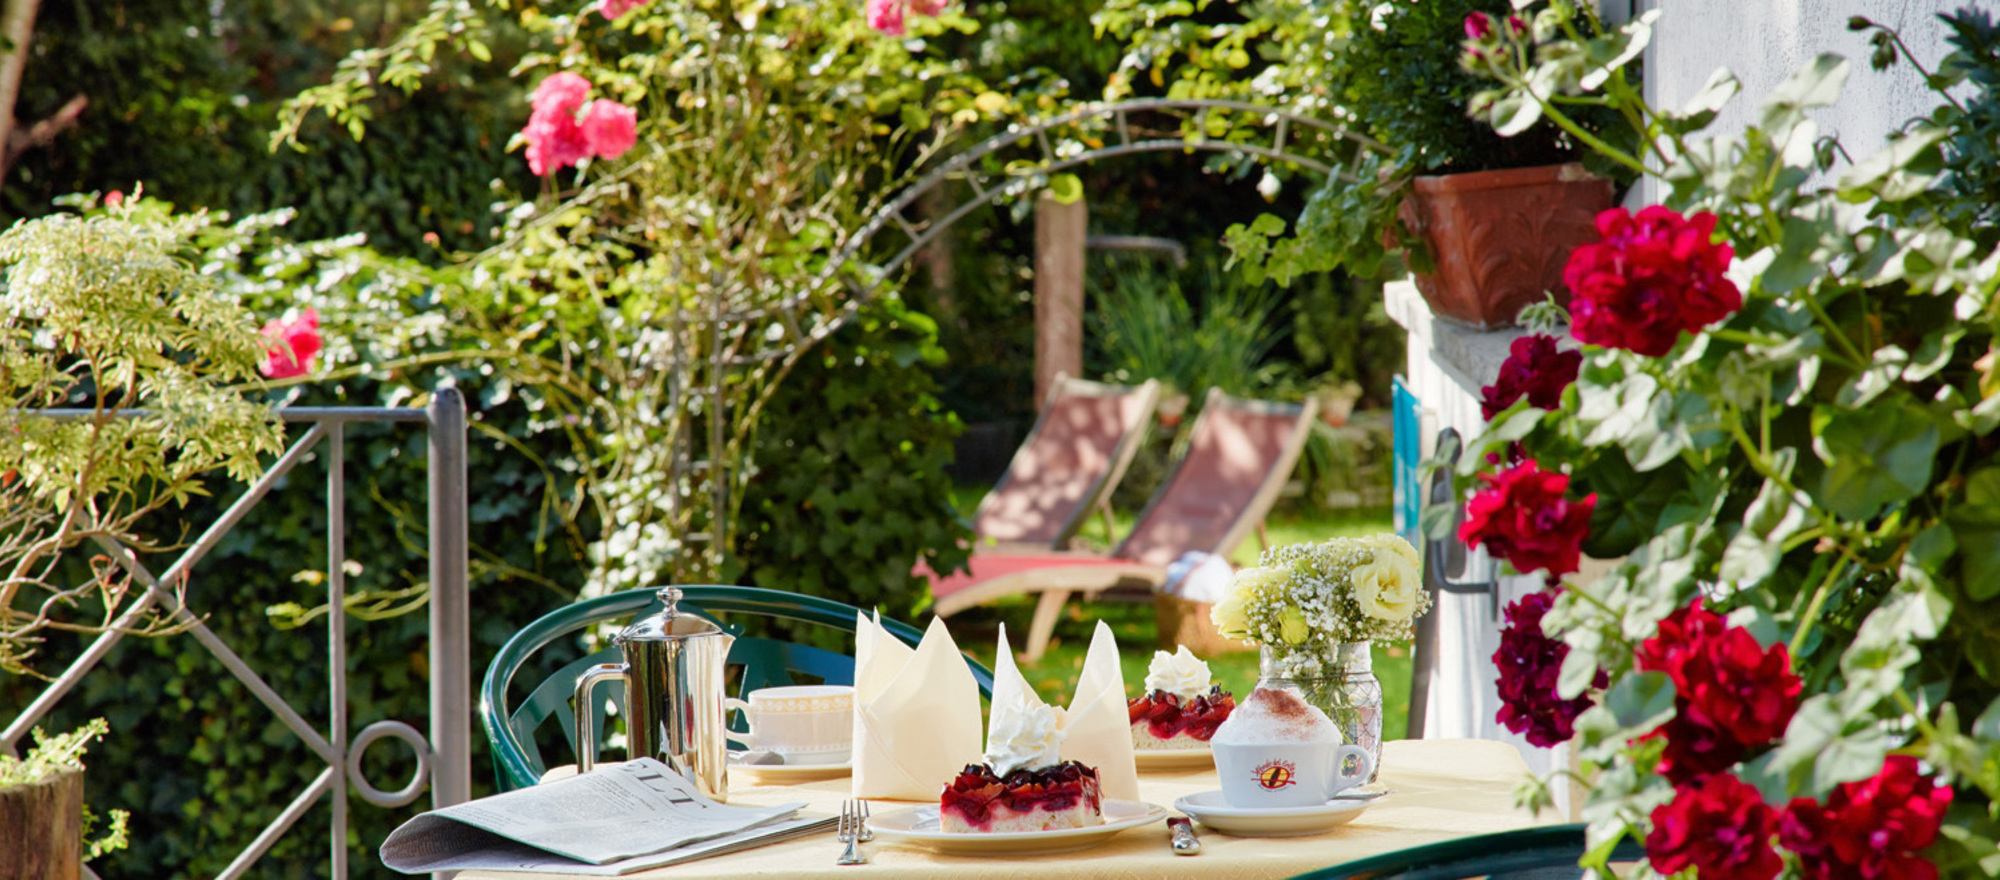 Tea time at the idyllic hotel garden in the 3-star-superior hotel Ringhotel Boemers Moselland in Alf/Mosel